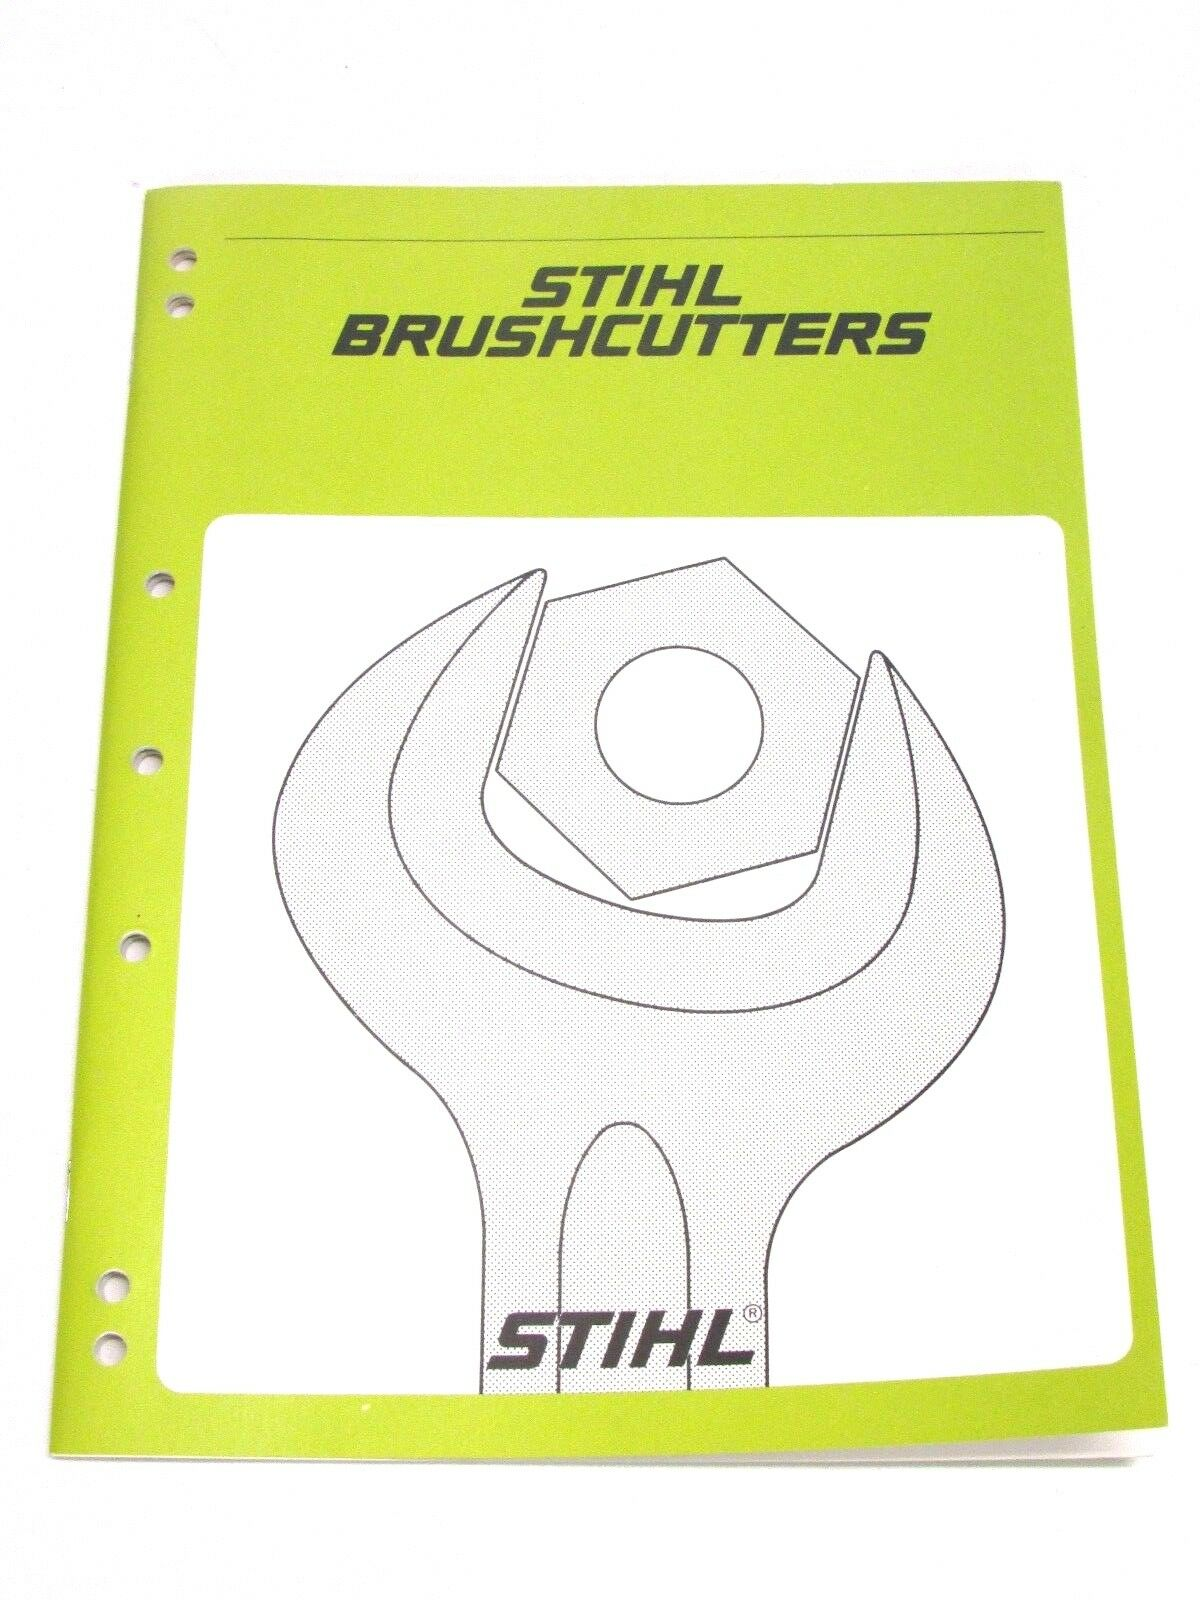 Stihl Brushcutters Illustrated Factory Service Manual 1 of 1Only 1  available ...